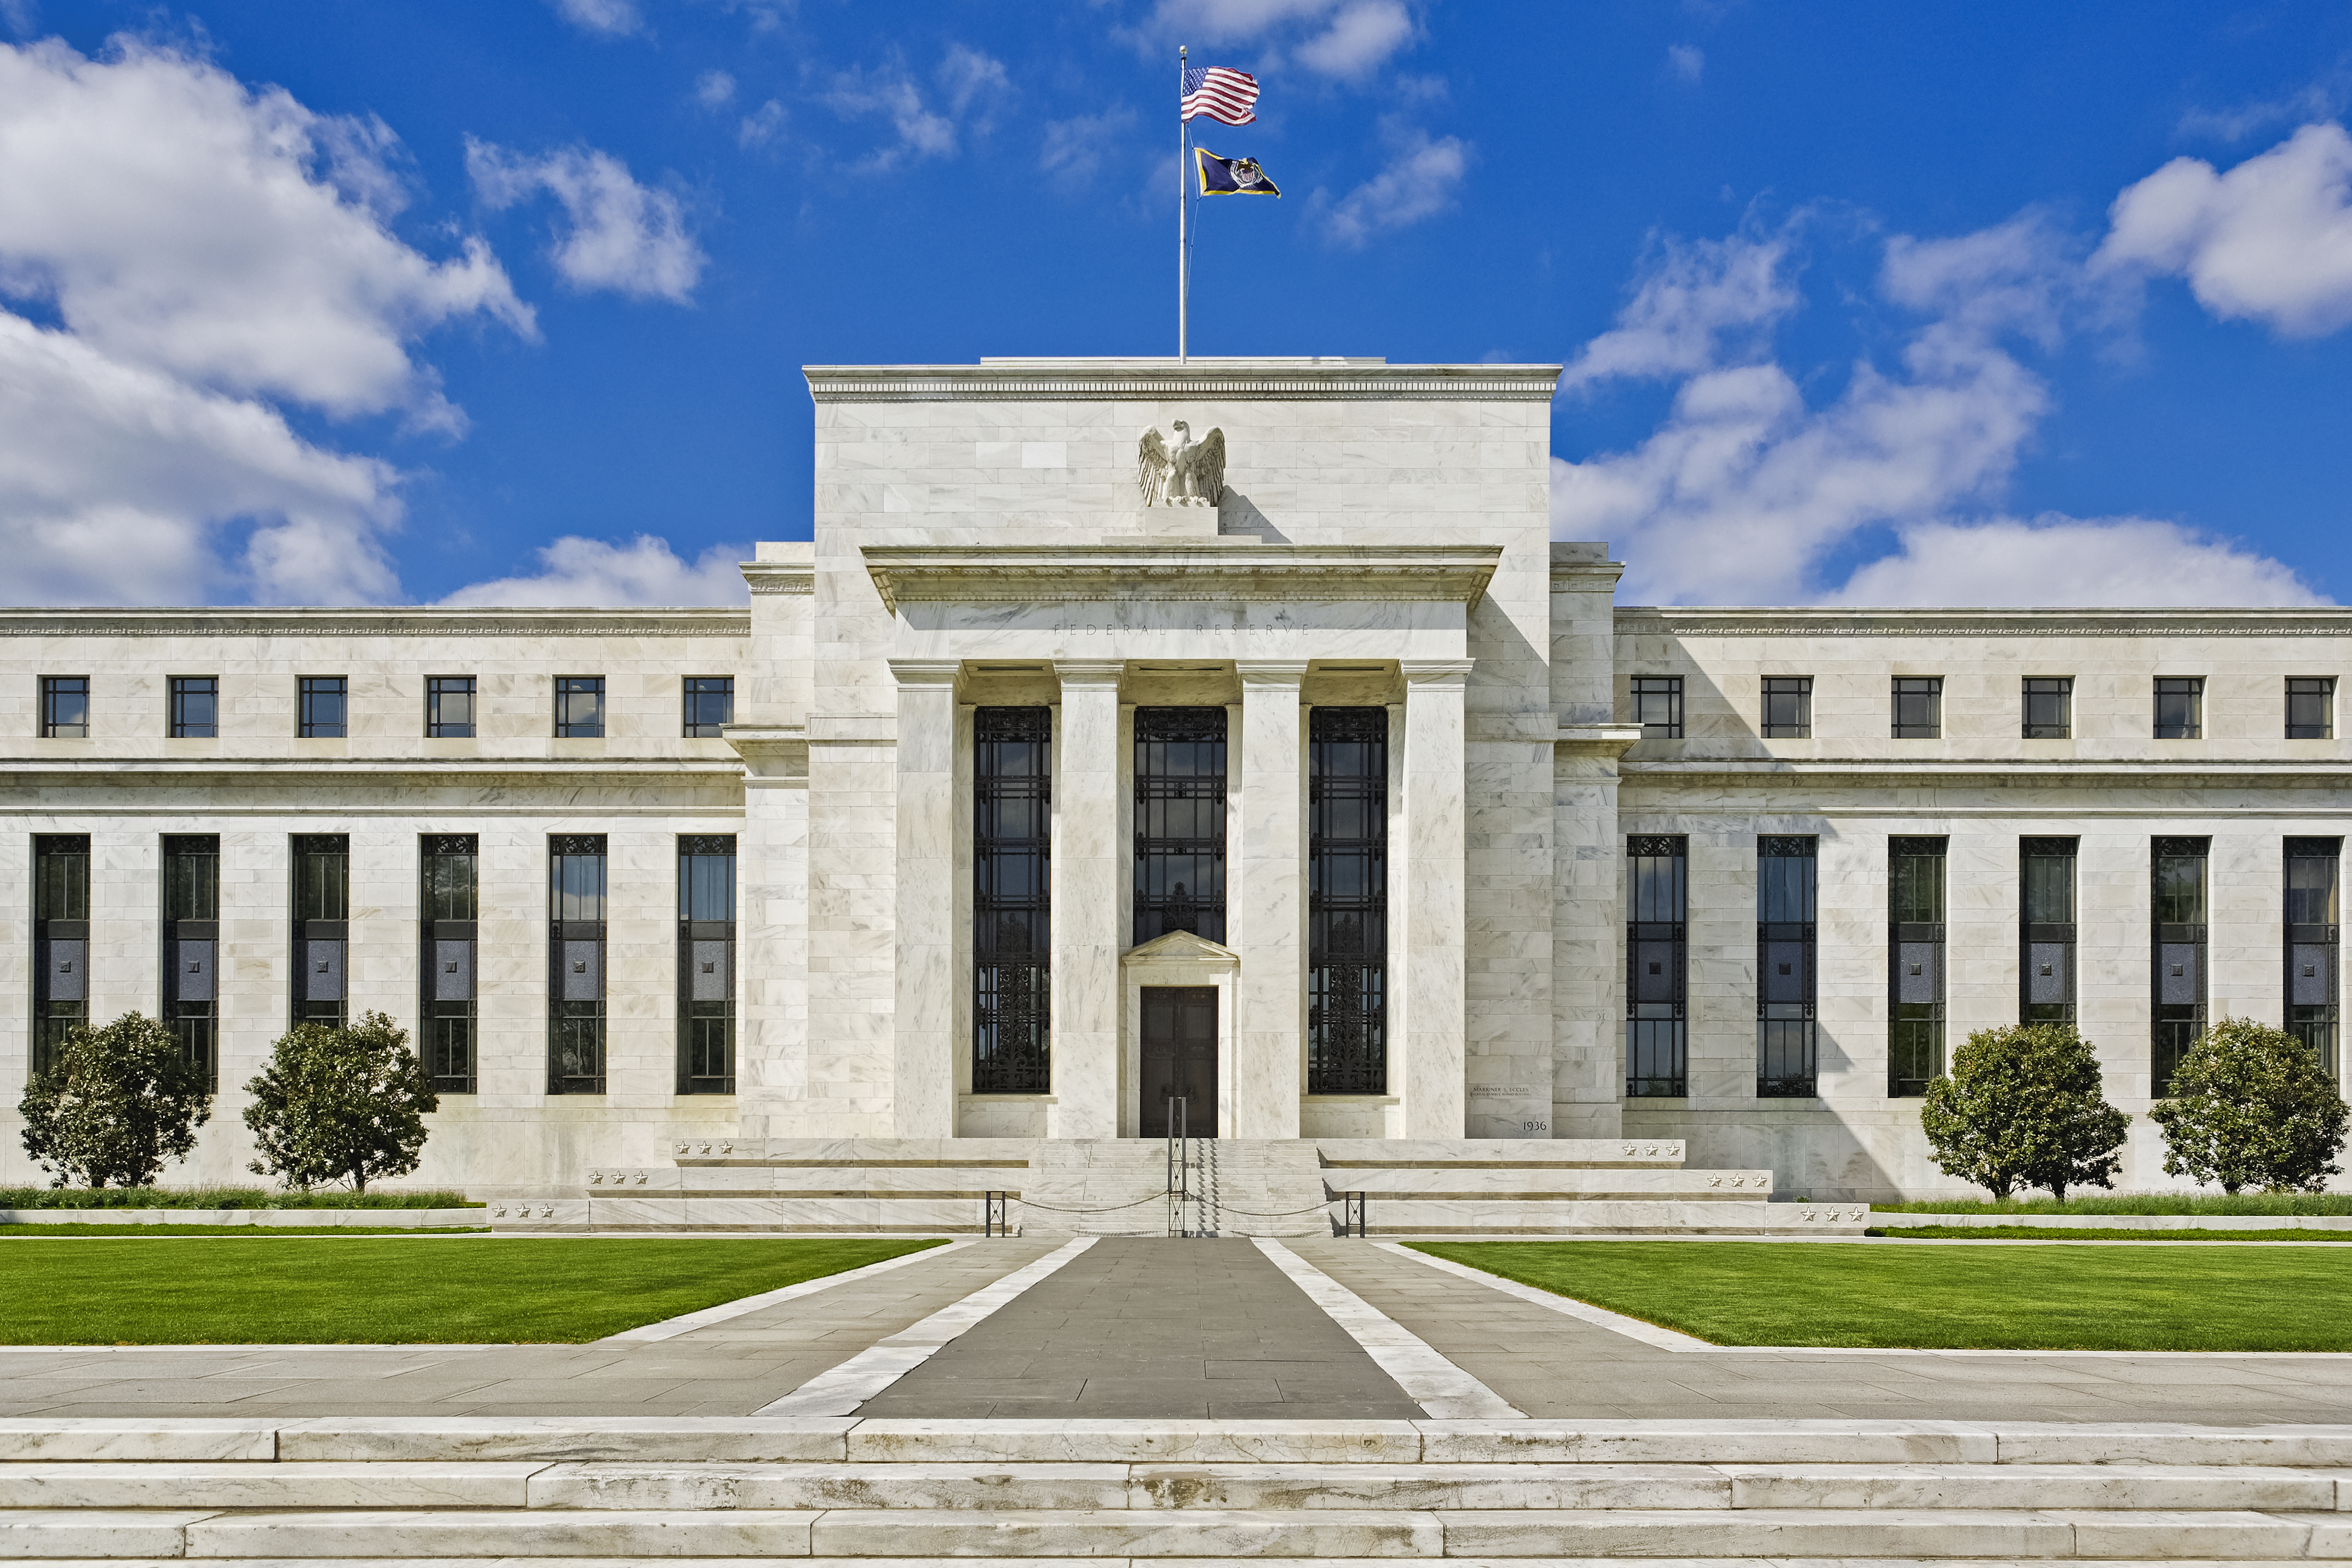 20/05 – Dollar volatile after Fed minutes